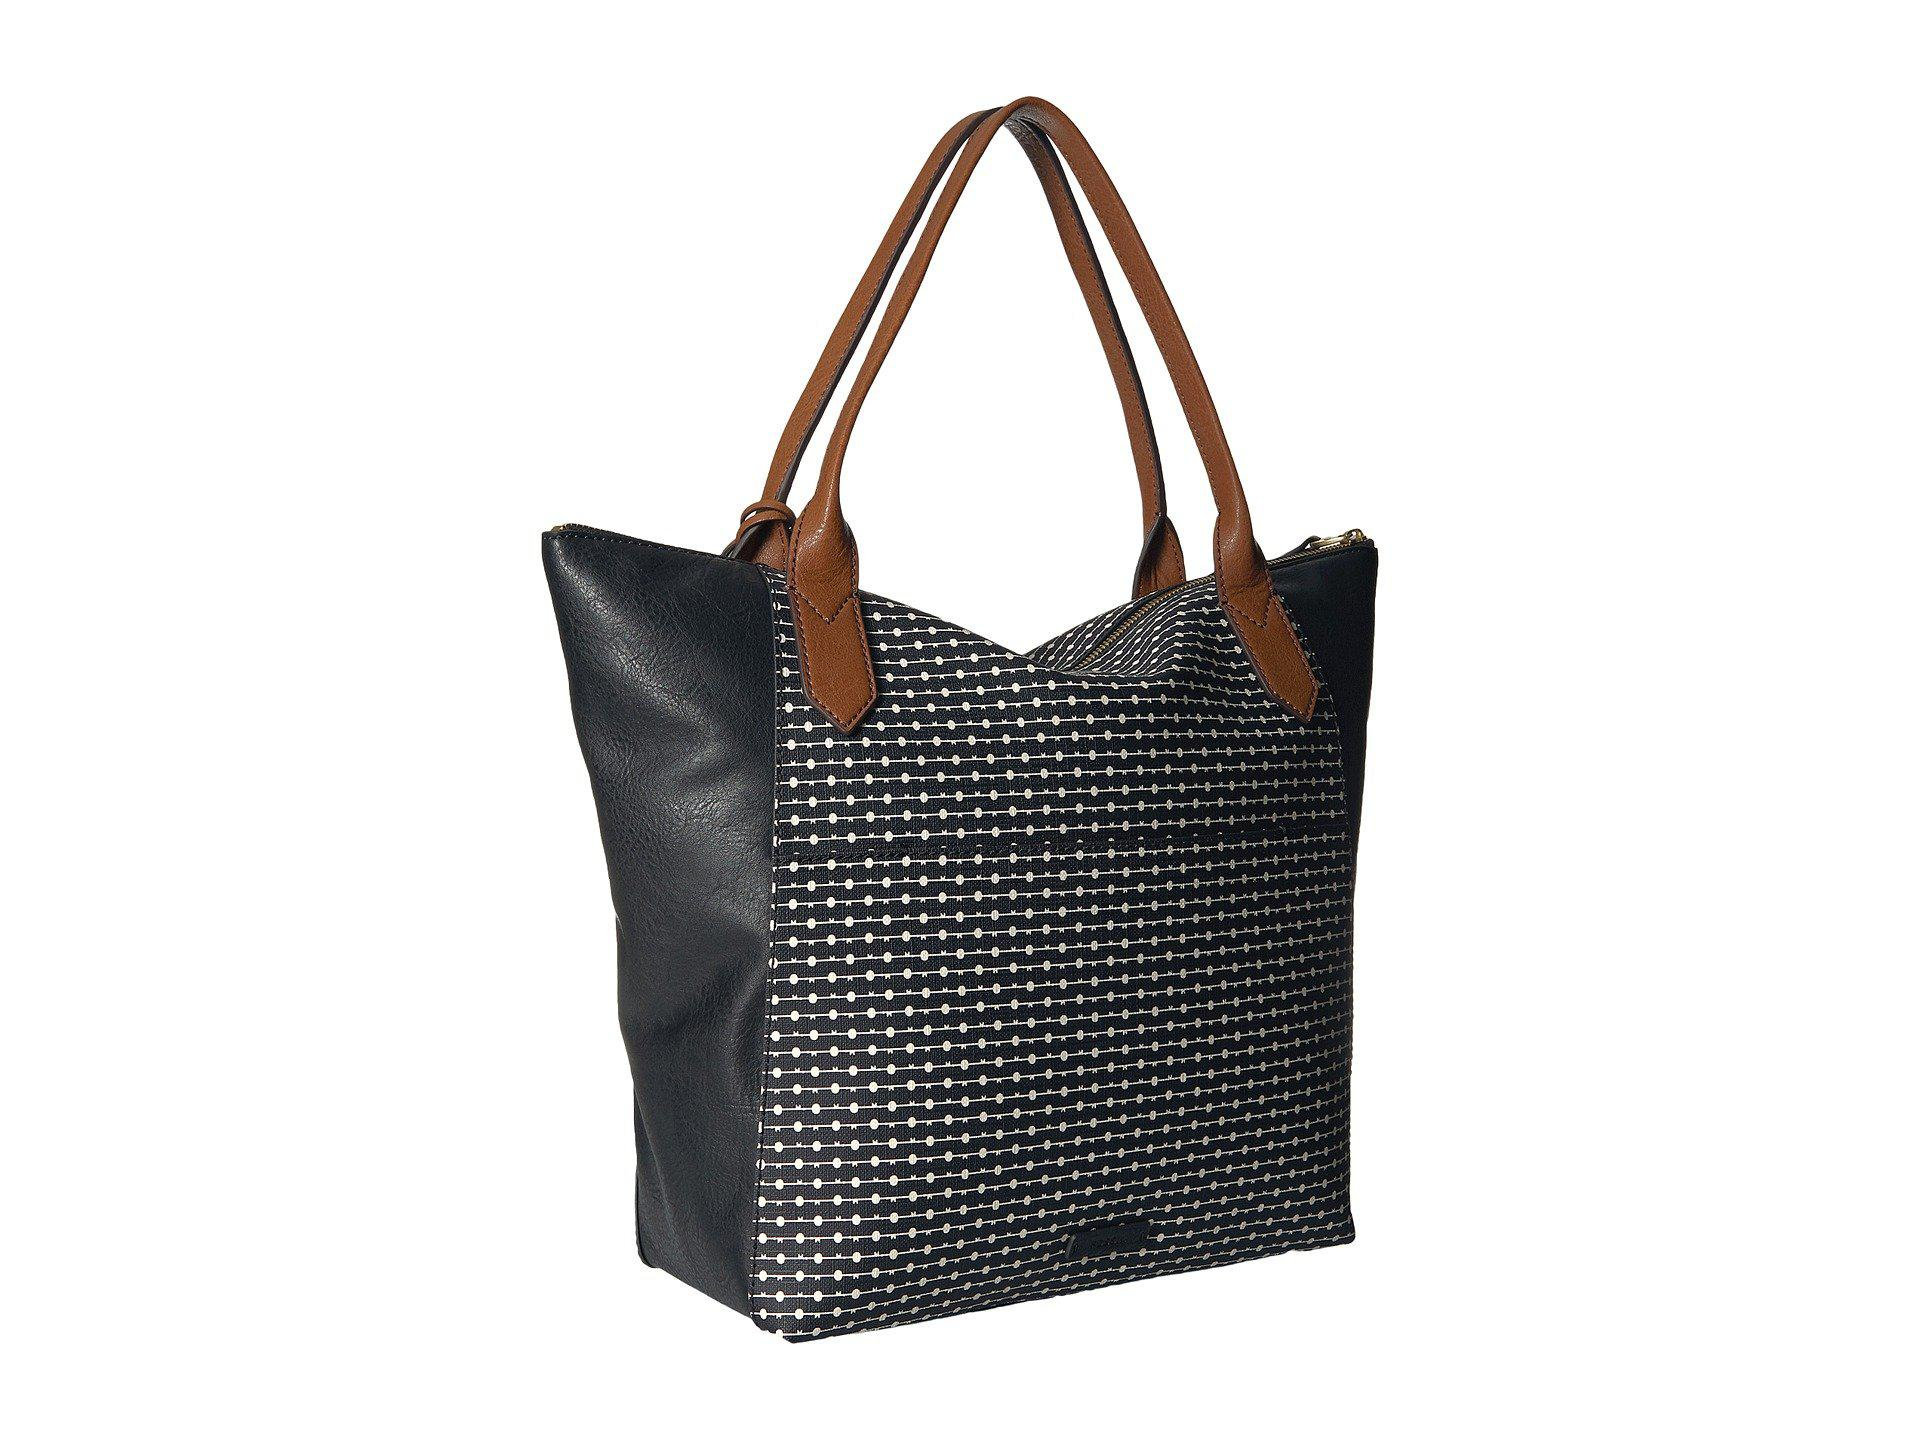 9fc3201d8 Fossil Fiona Tote in Black - Lyst